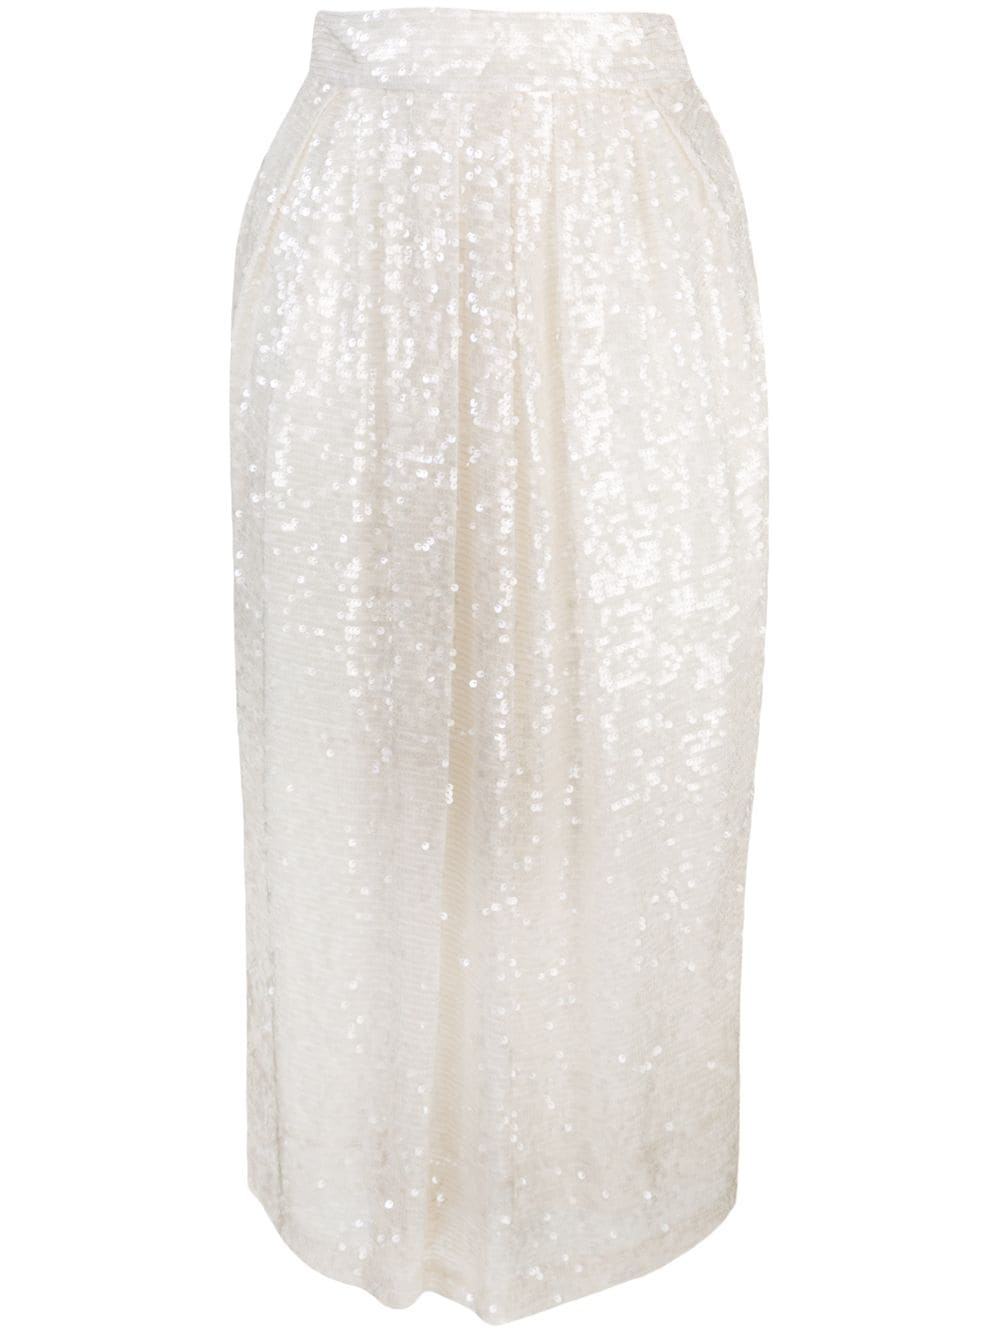 EMBROIDERED MIDI BALL SKIRT IN SEQUIN